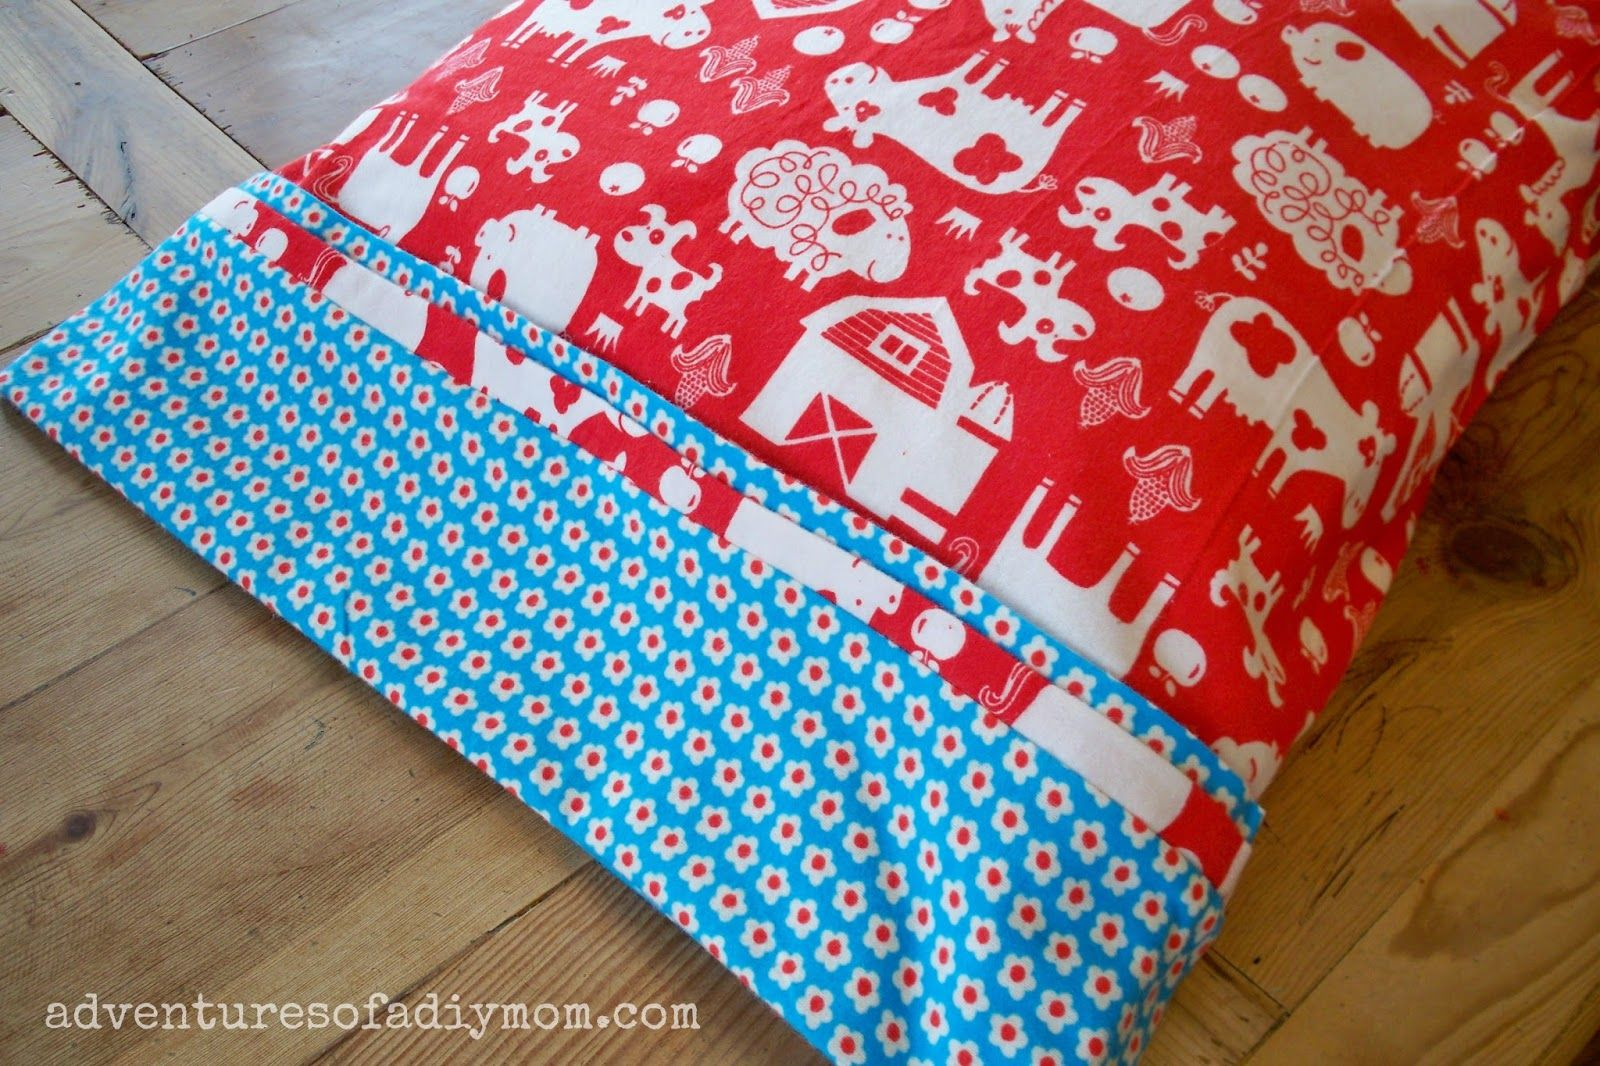 Making Pillowcases Cool How To Make An Easy Rolled Pillowcase With Only 3 Seams  Easy 2018